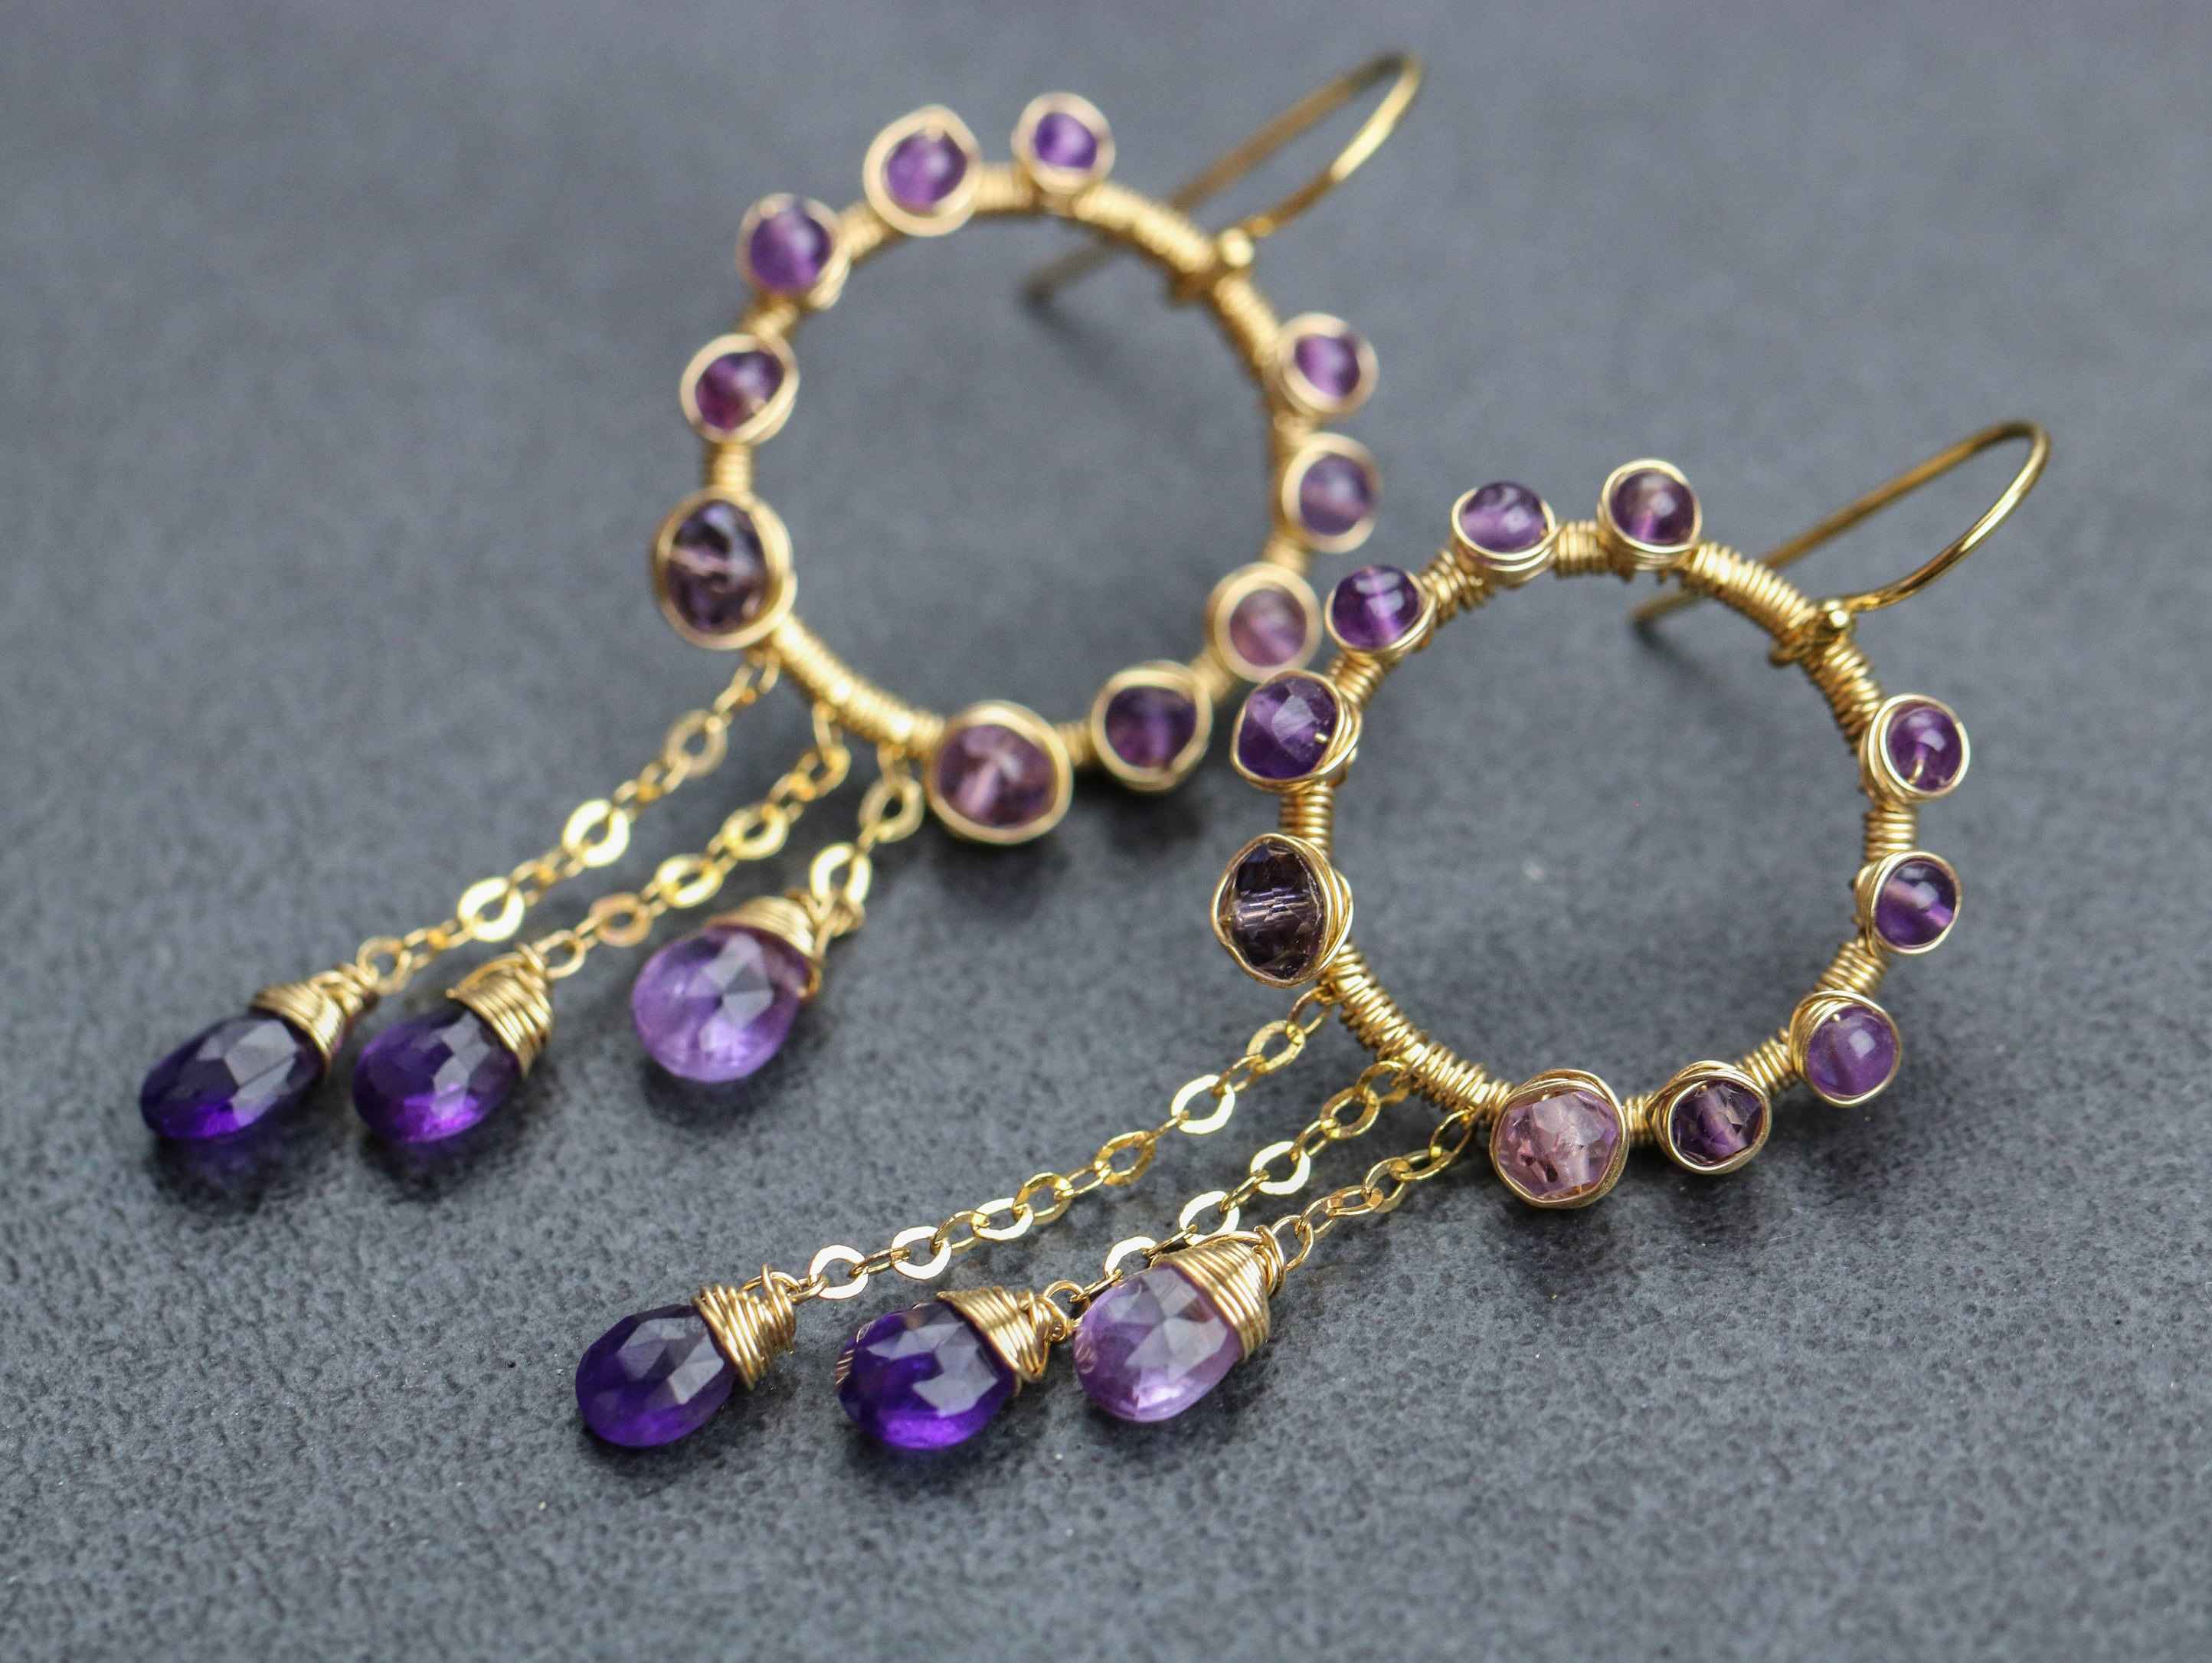 vitrial vl light queenees silver crystals made product swarovski earrings with purple sterling